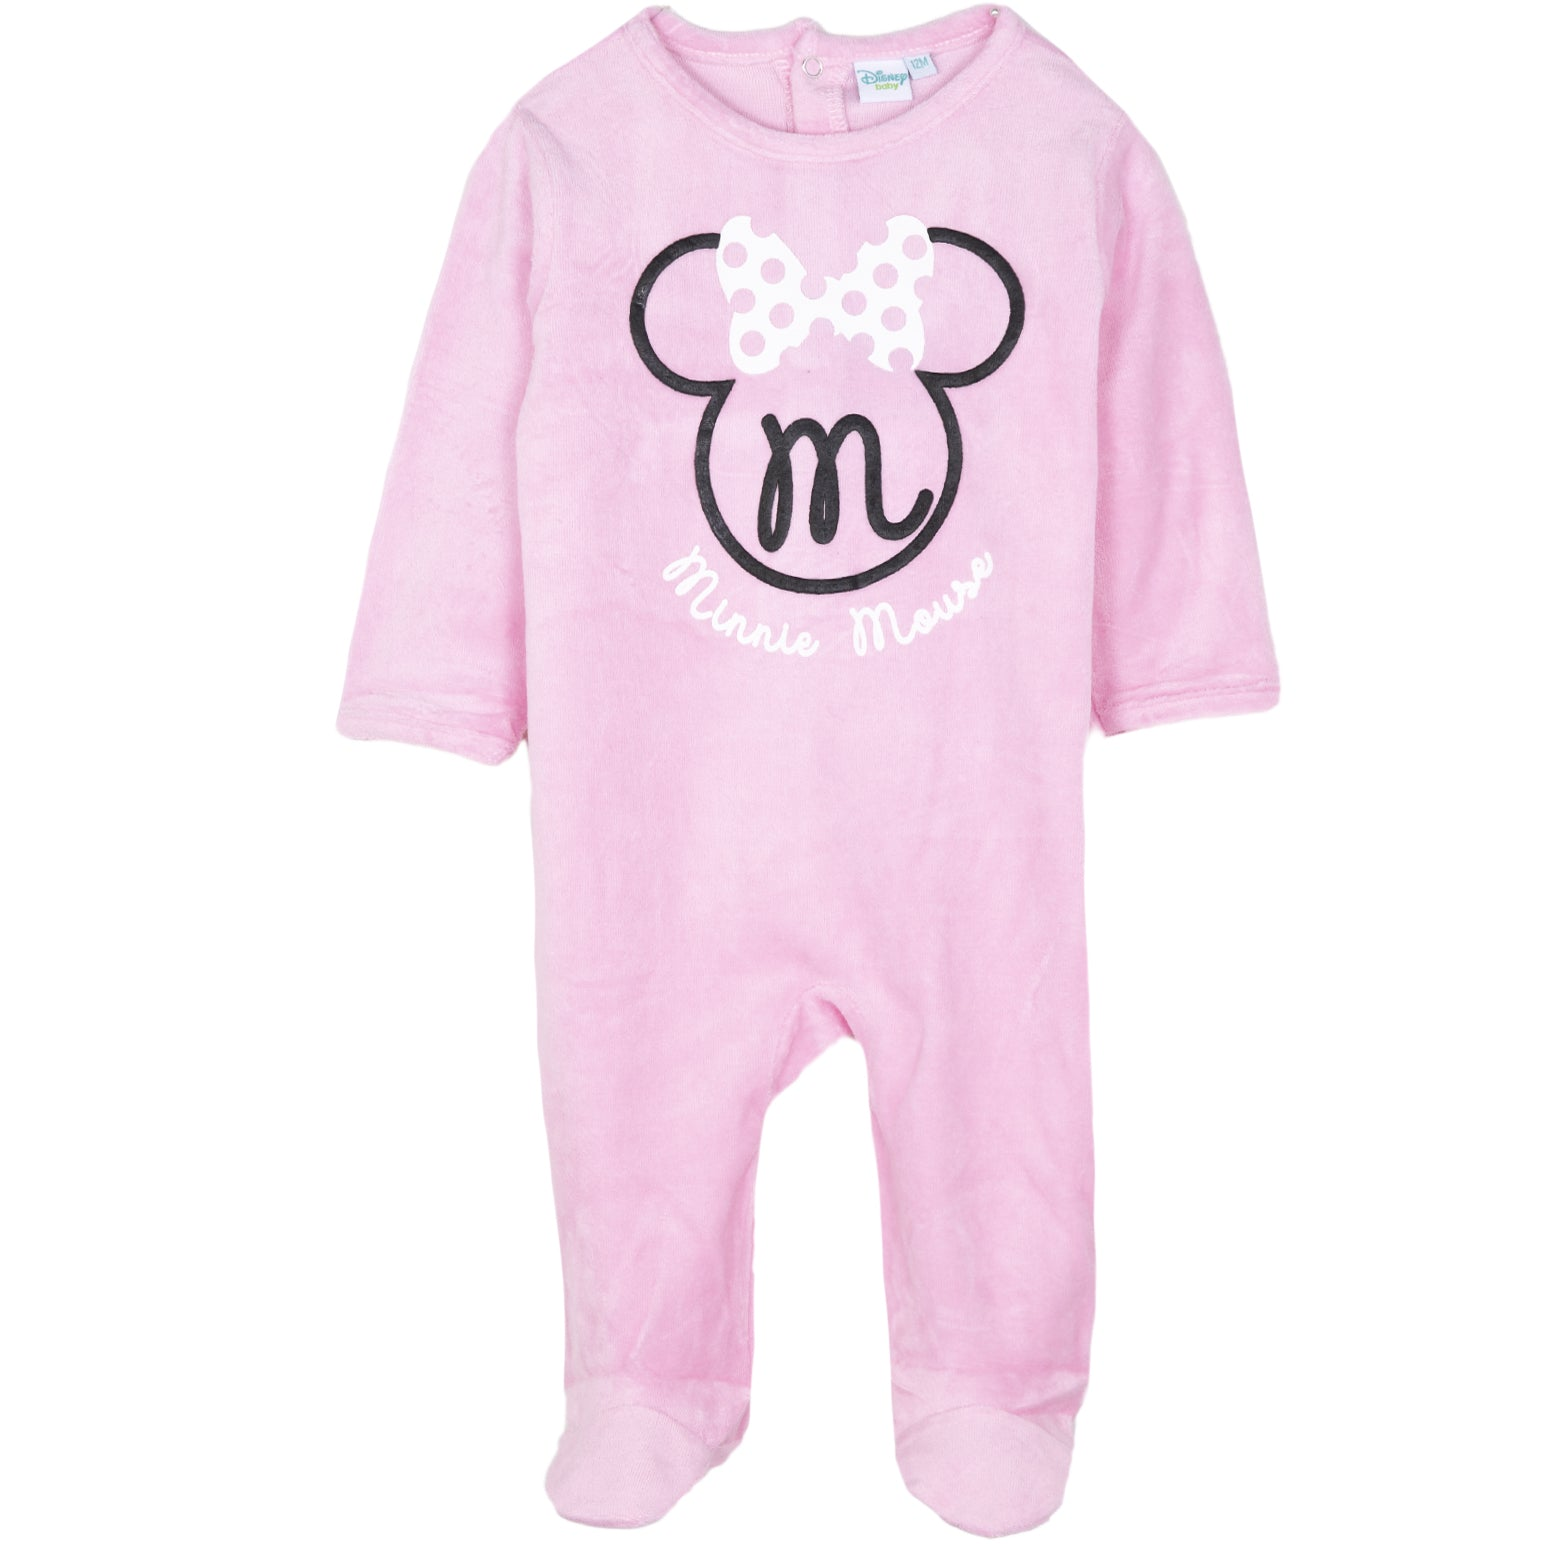 3-24 Months Disney Baby Girls Minnie Mouse Long Sleeved Pink Romper